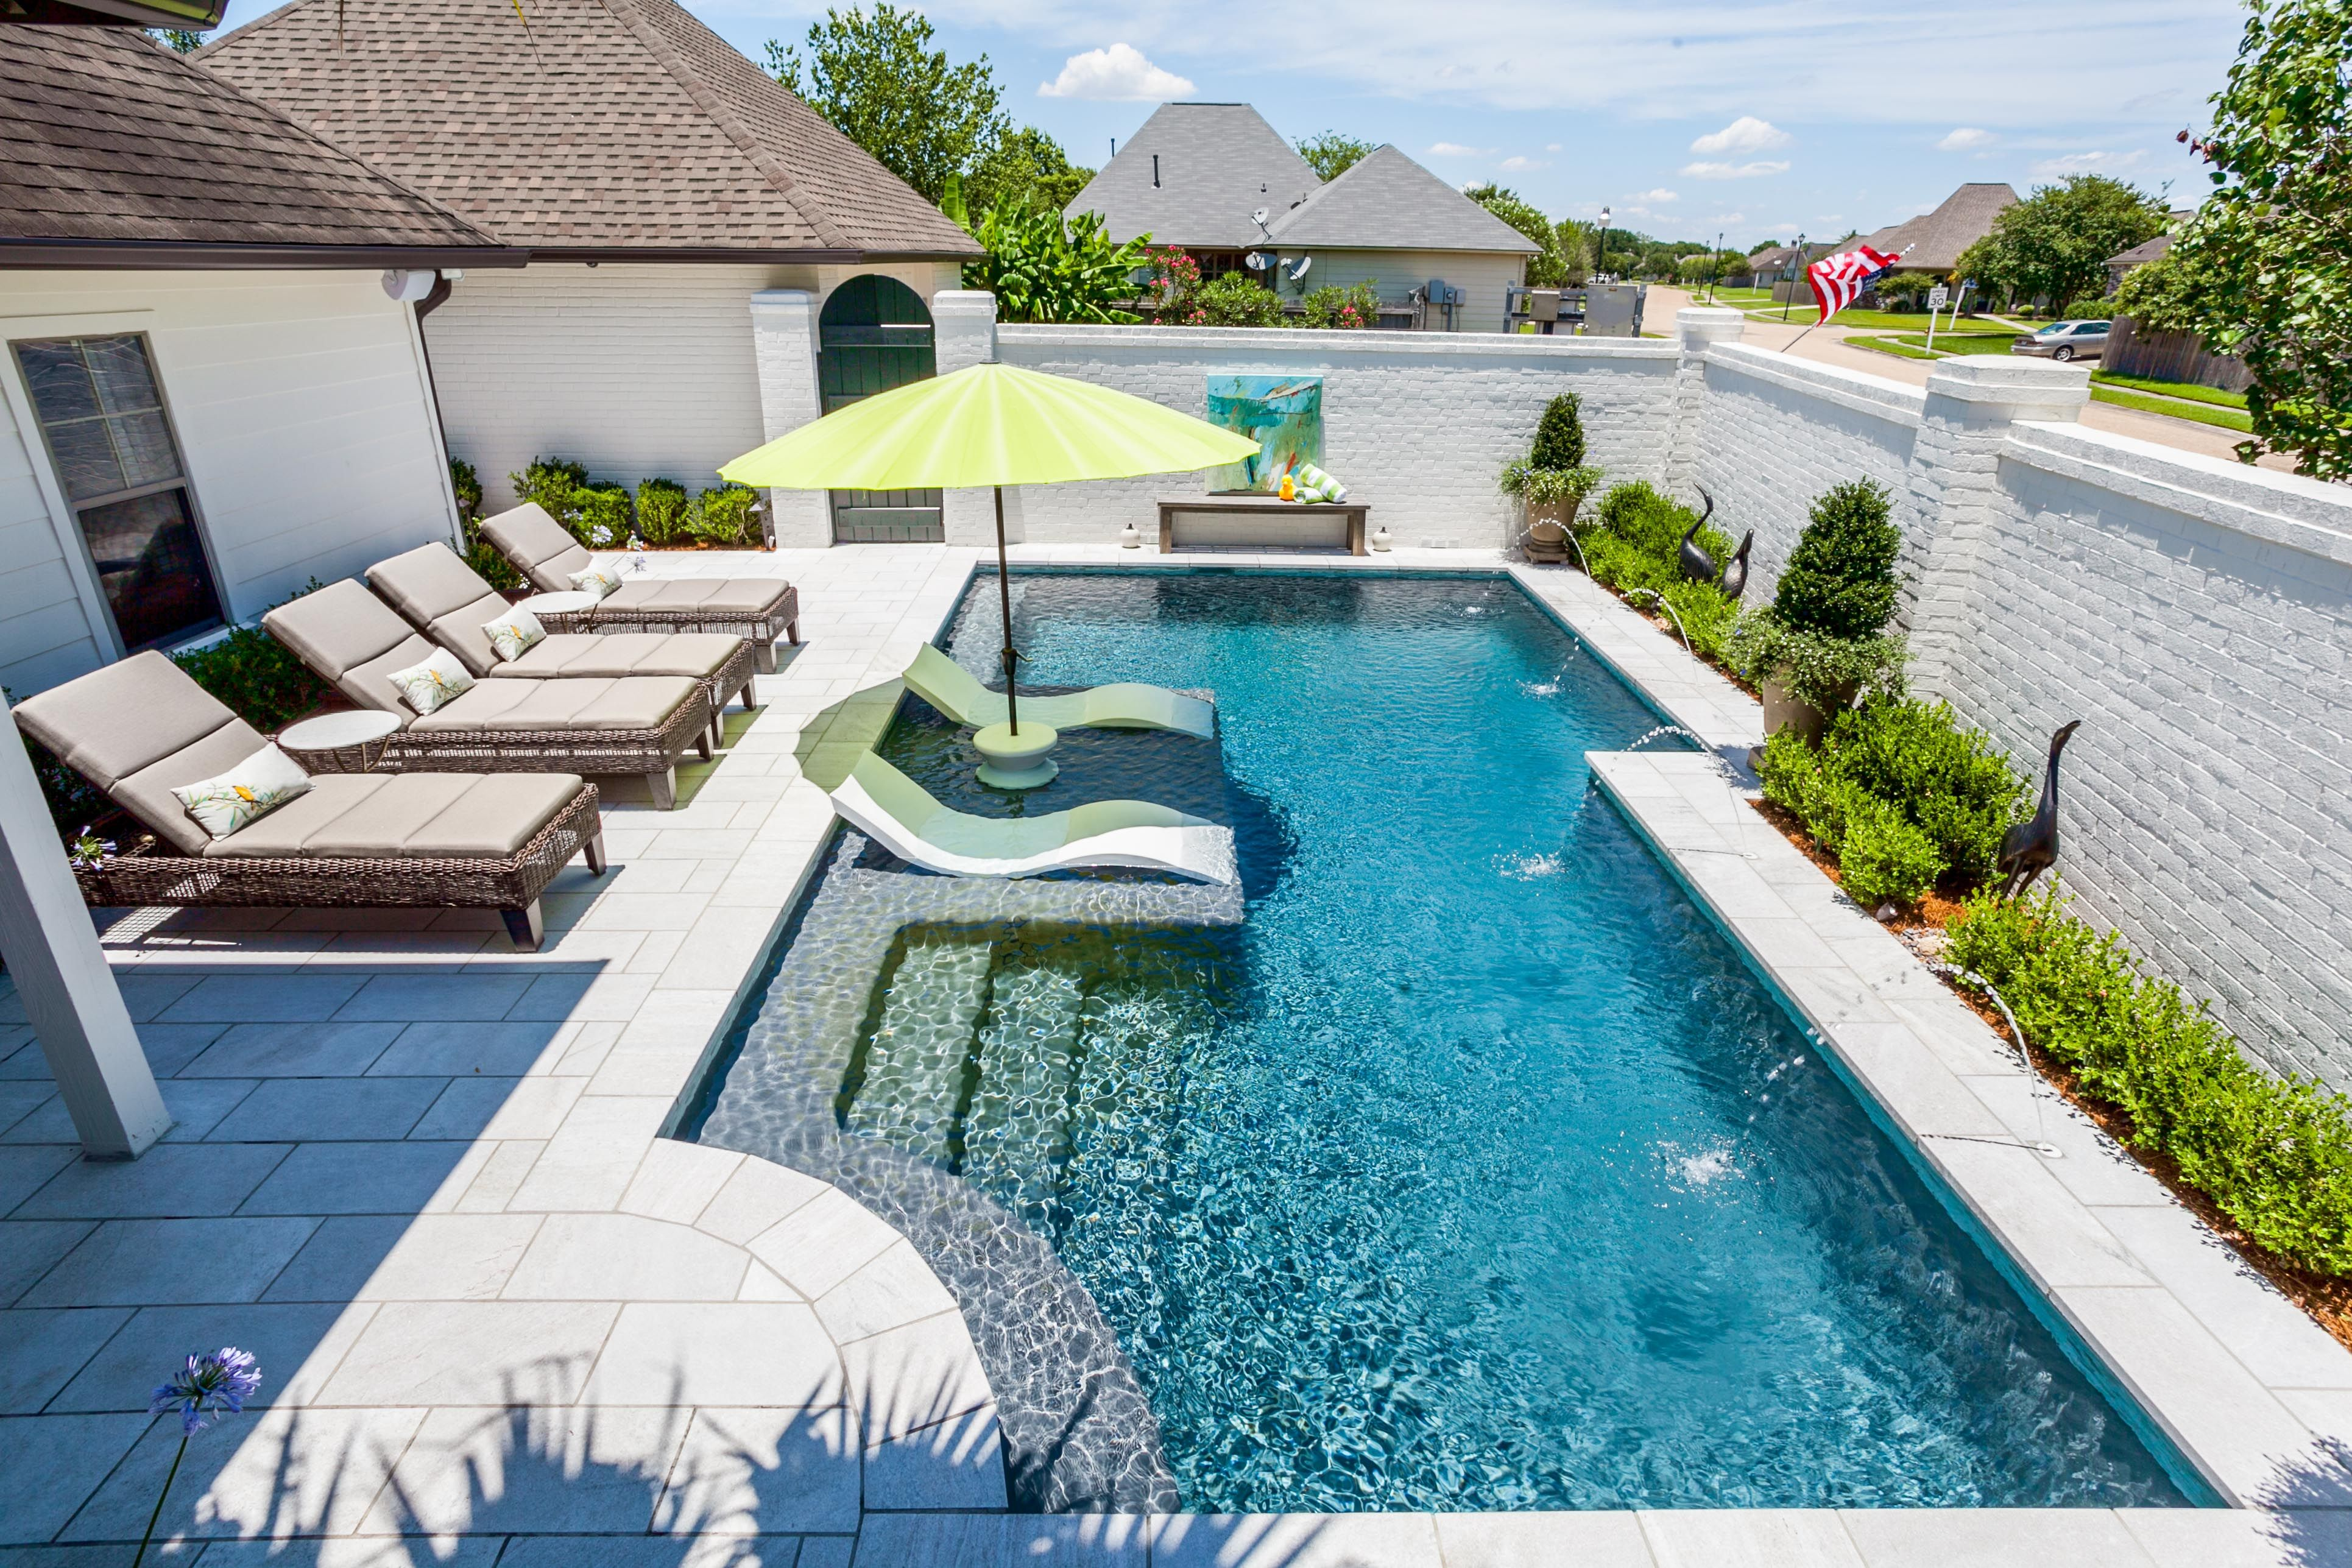 In Pool Furniture And Accessories By Ledge Lounger Stylish Furniture Designed For In Wa Backyard Pool Landscaping Small Backyard Pools Swimming Pools Backyard